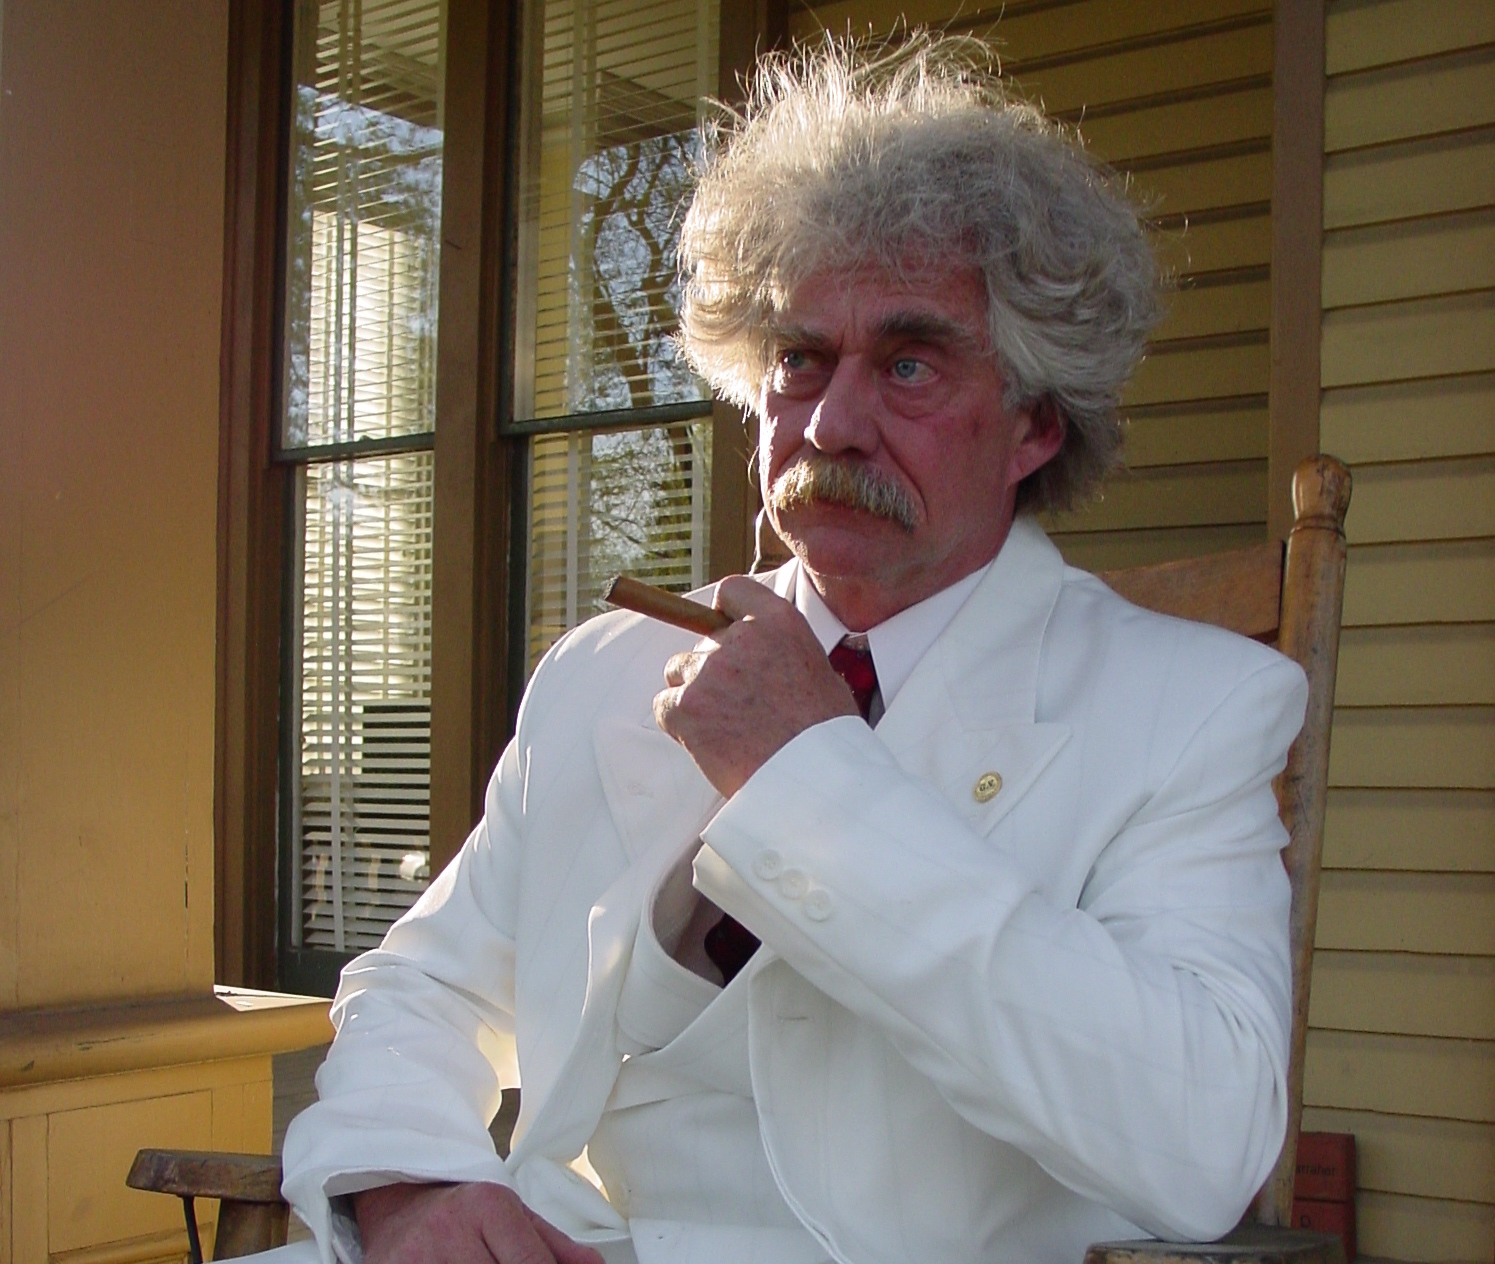 Alvey as Mark Twain